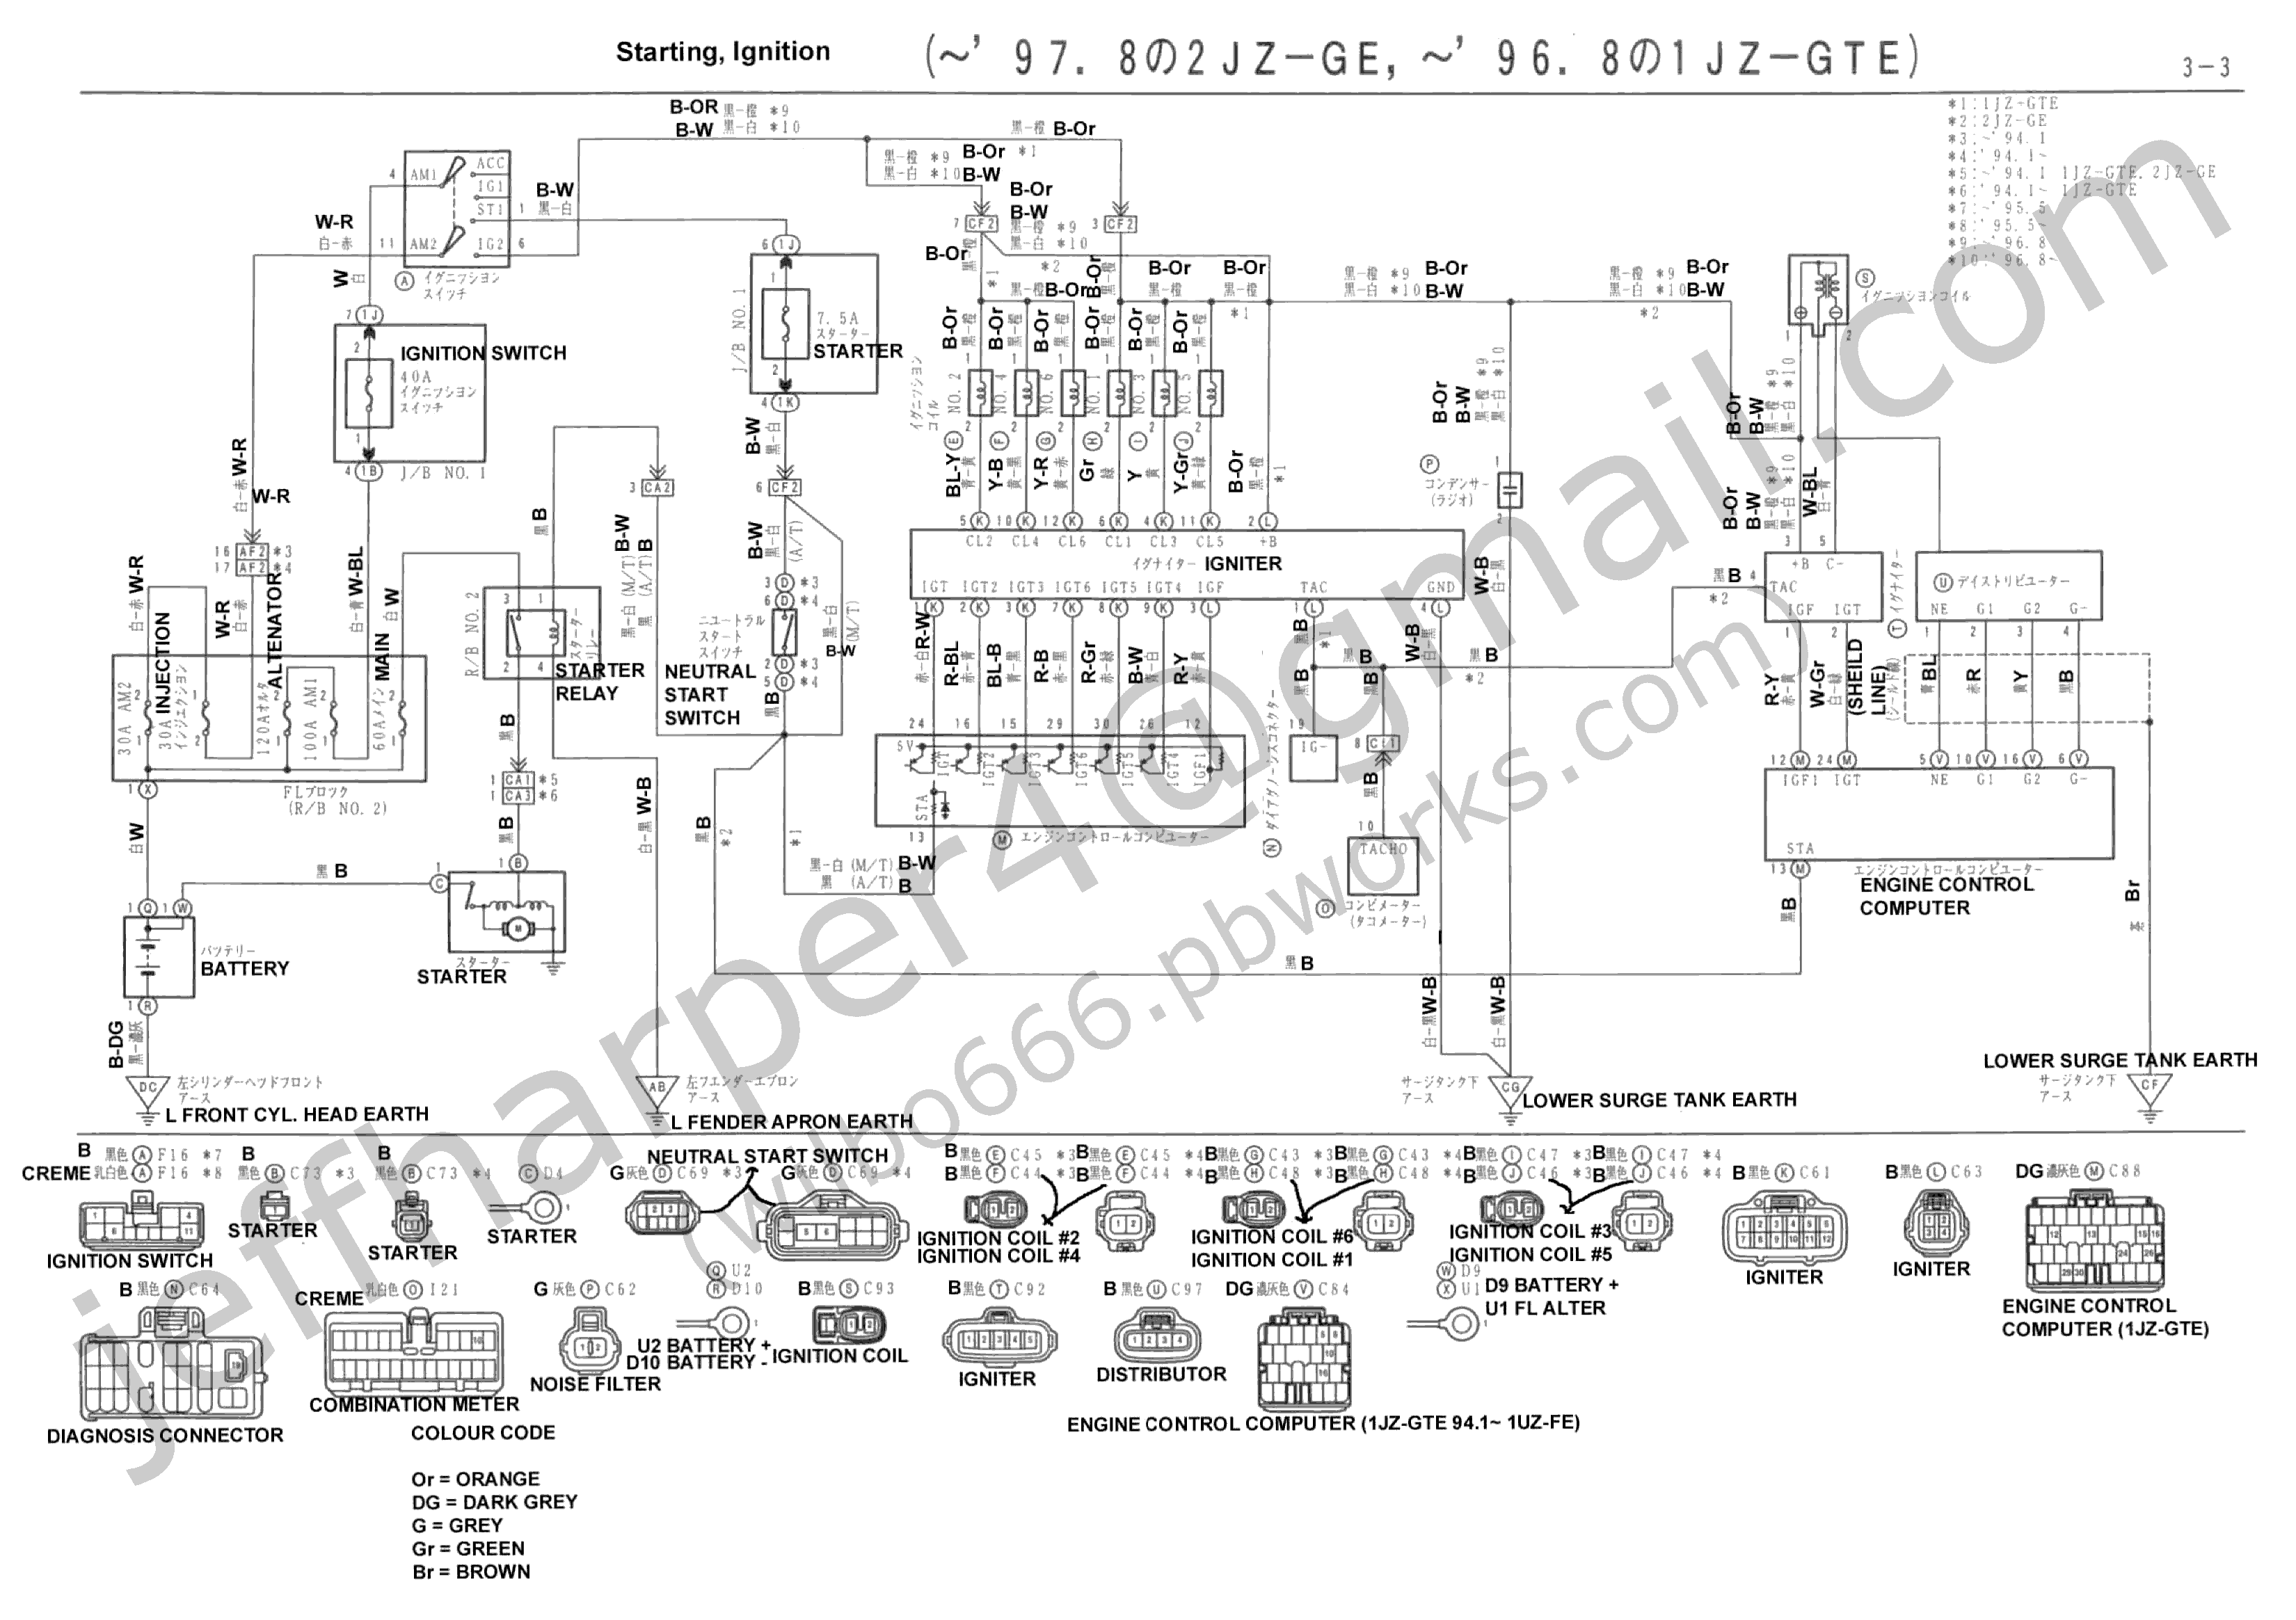 Wiring Diagram 1jz Gte